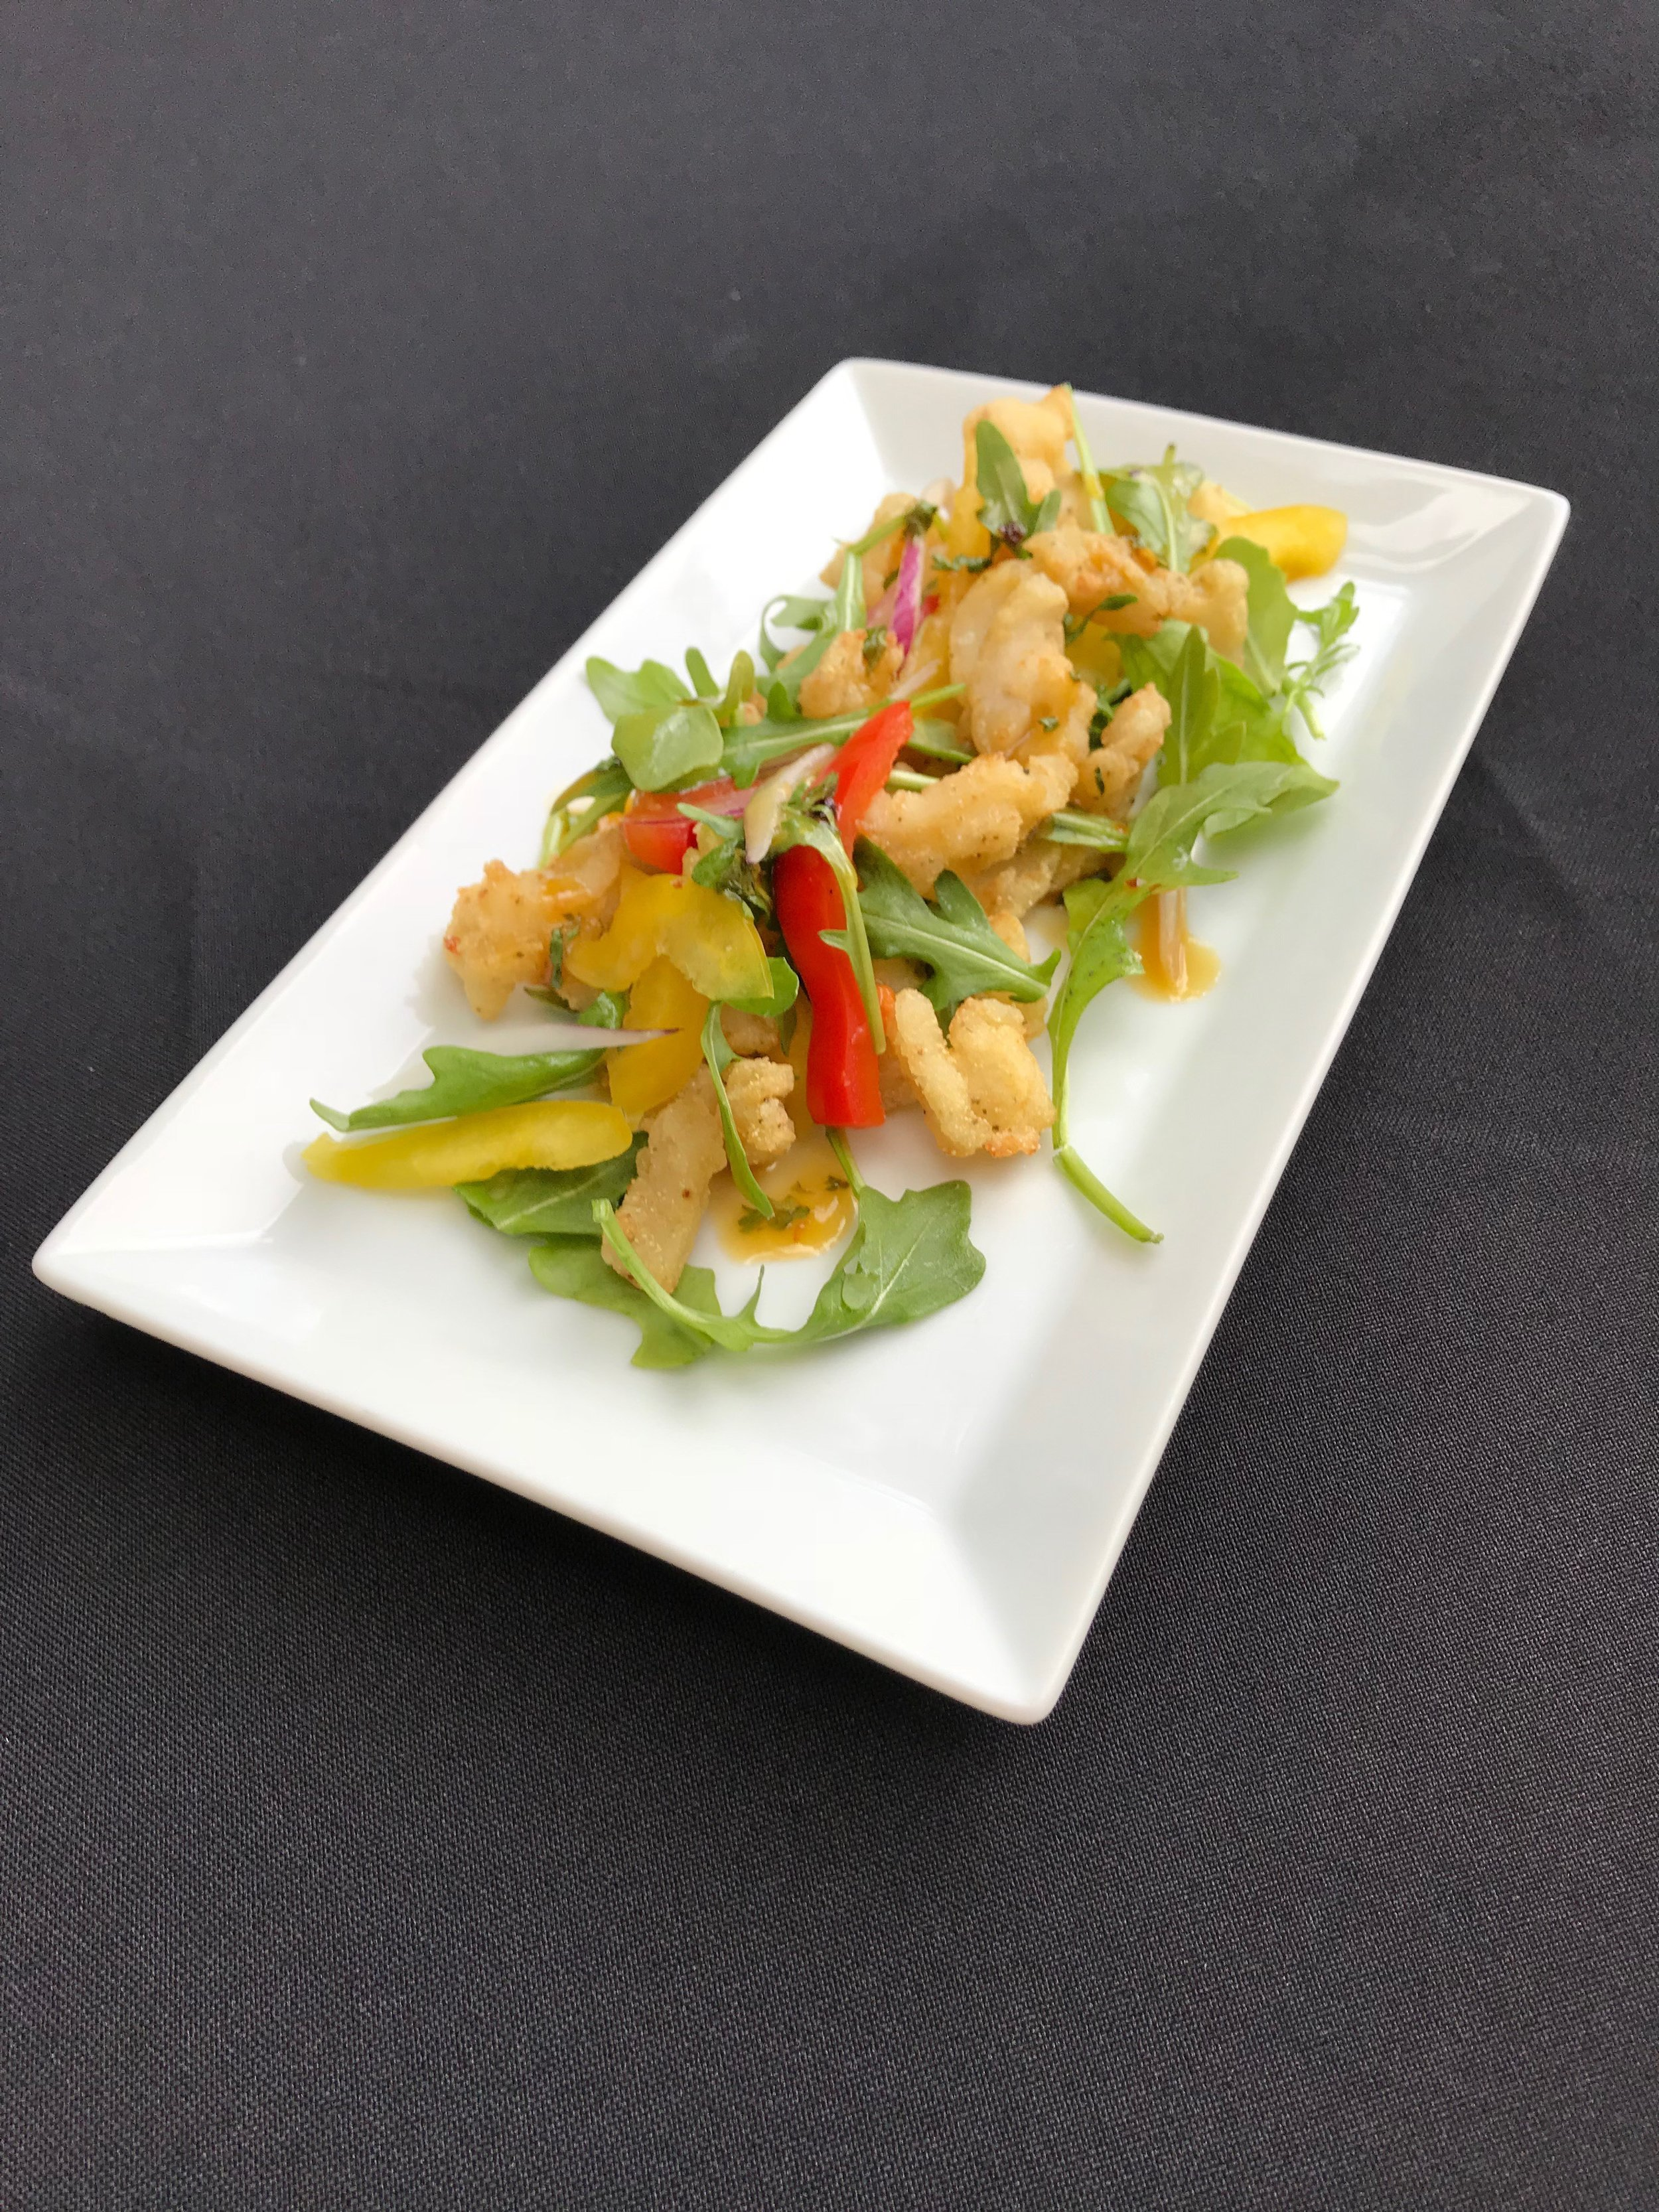 Conch Salad - Fresh conch, thinly sliced and deep-fried, served with bell peppers, arugula, red onion, and dressed with a sweet orange sauce